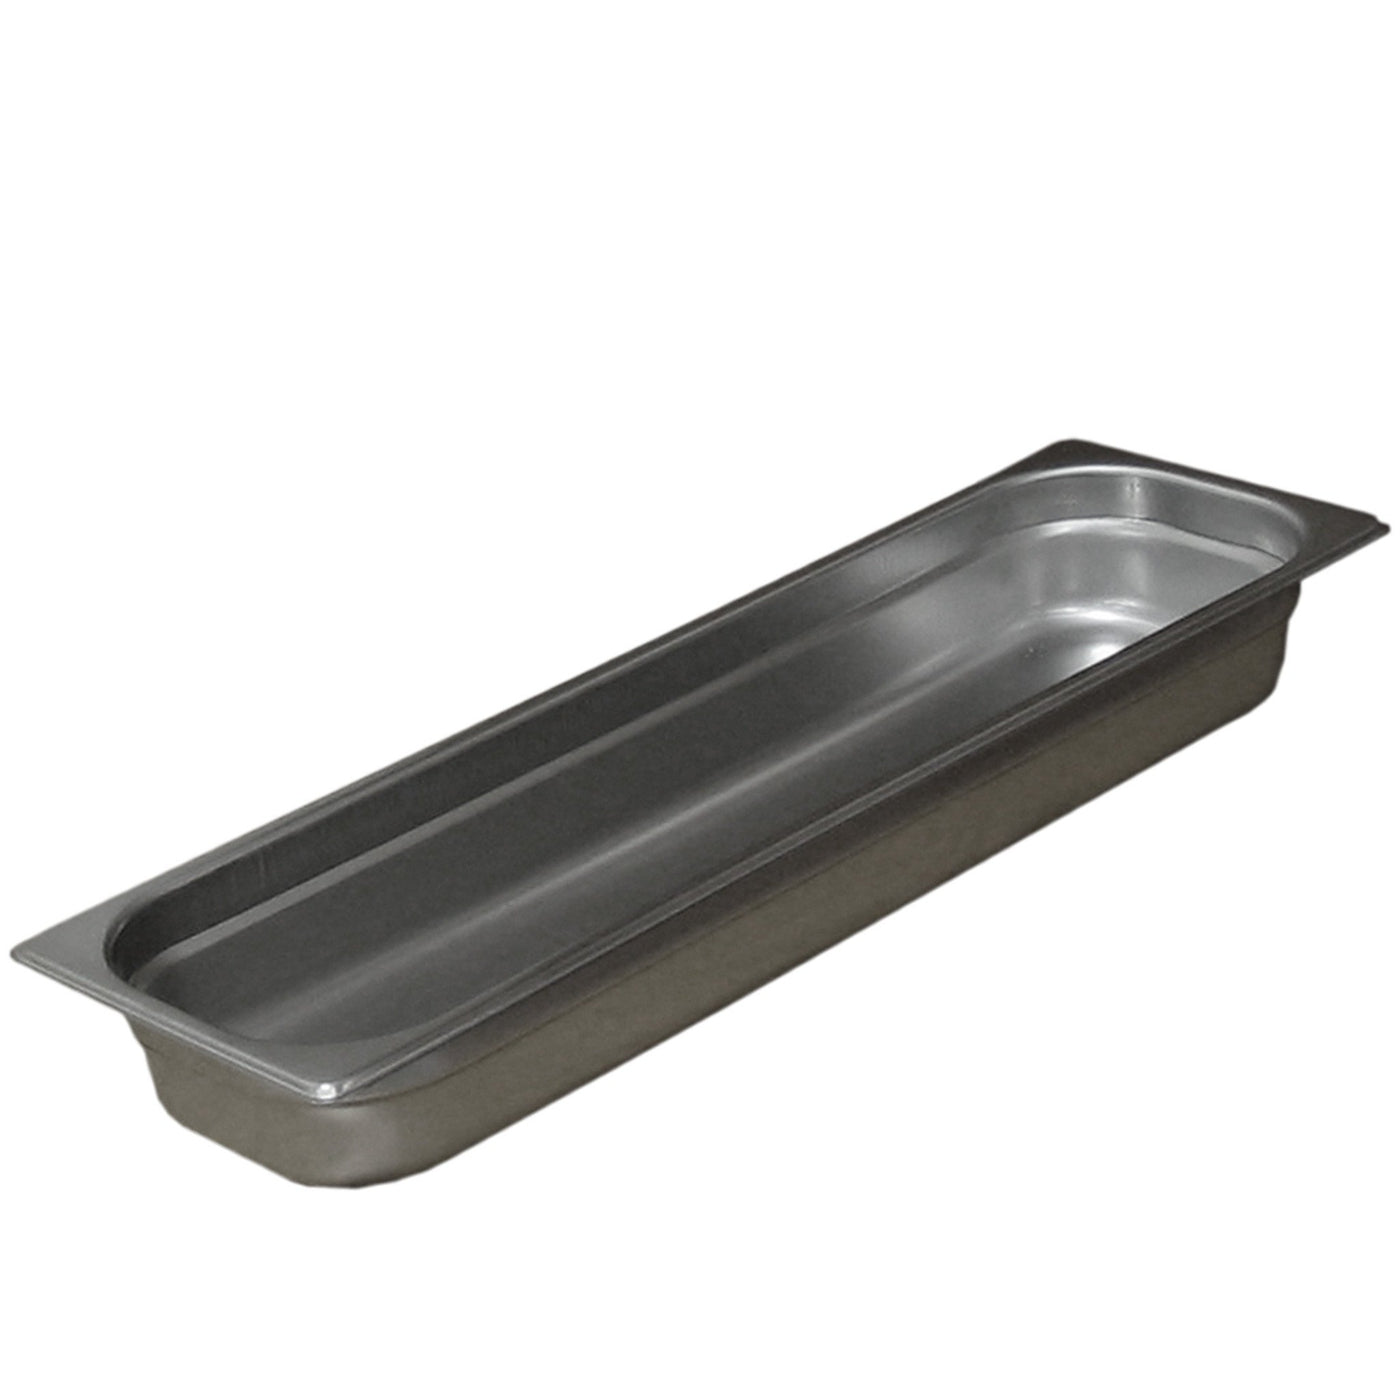 Instrument Trays-Laboratory Accessory-Mortech Manufacturing Company Inc. Quality Stainless Steel Autopsy, Morgue, Funeral Home, Necropsy, Veterinary / Anatomy, Dissection Equipment and Accessories